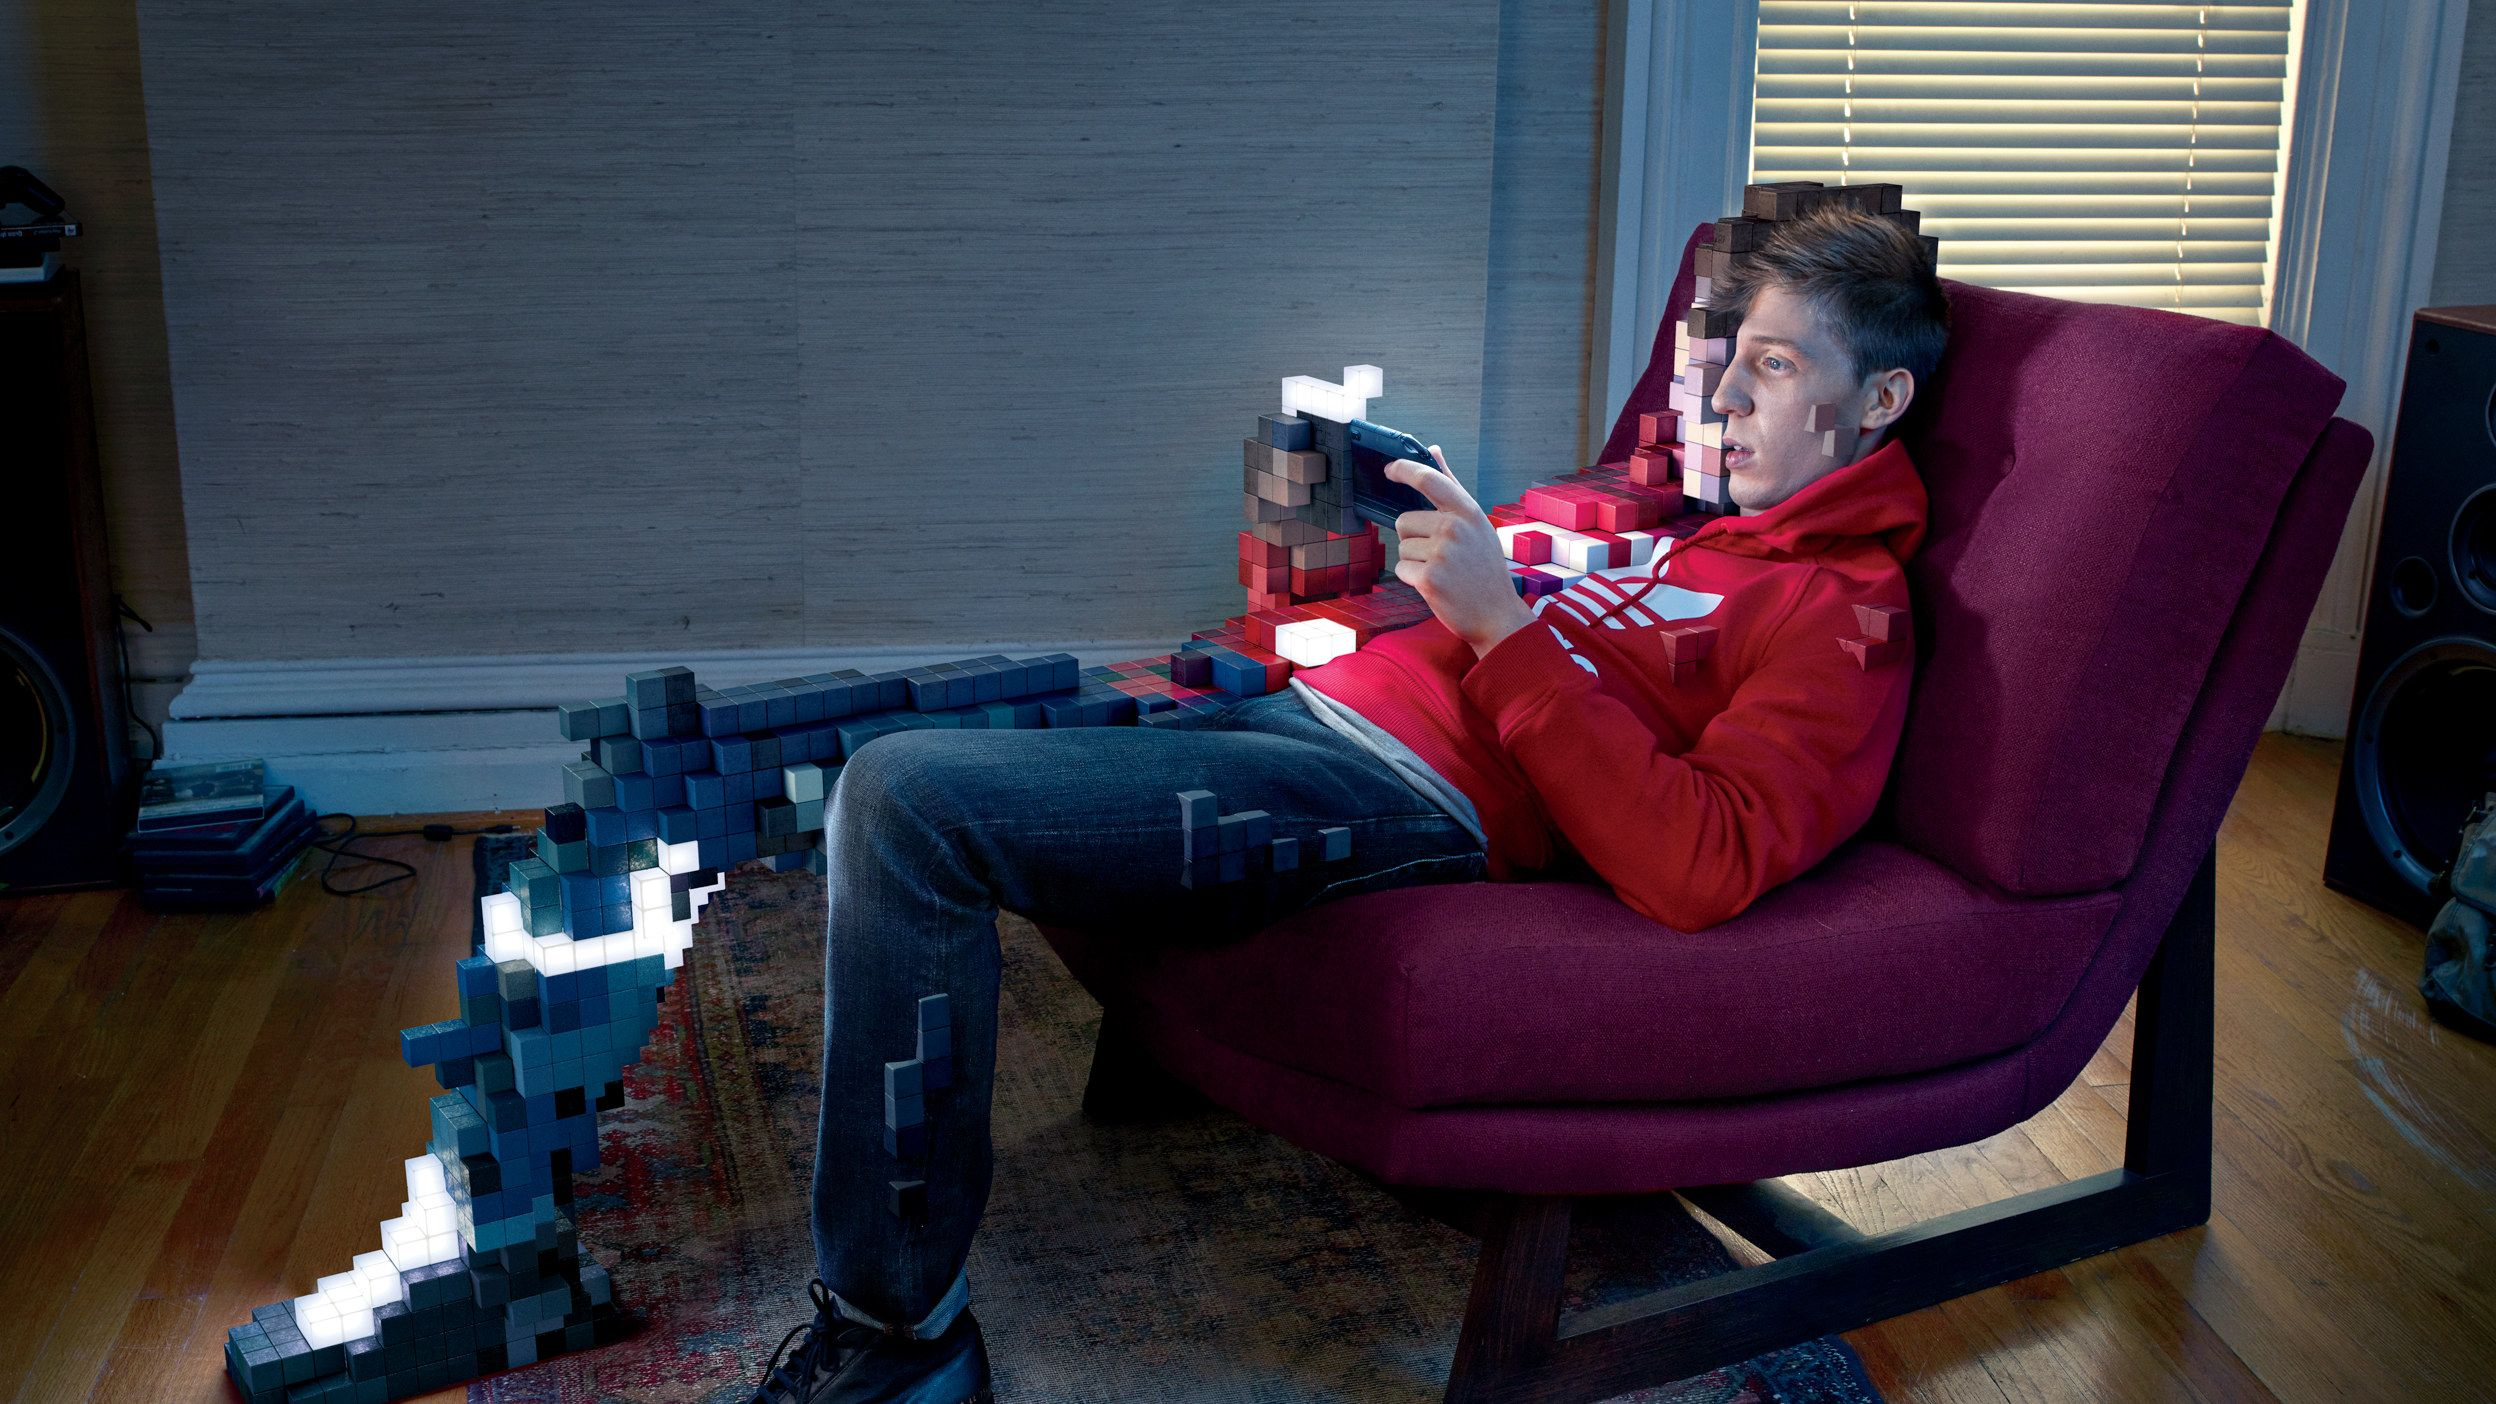 35++ Video game addiction treatment centers near me mode